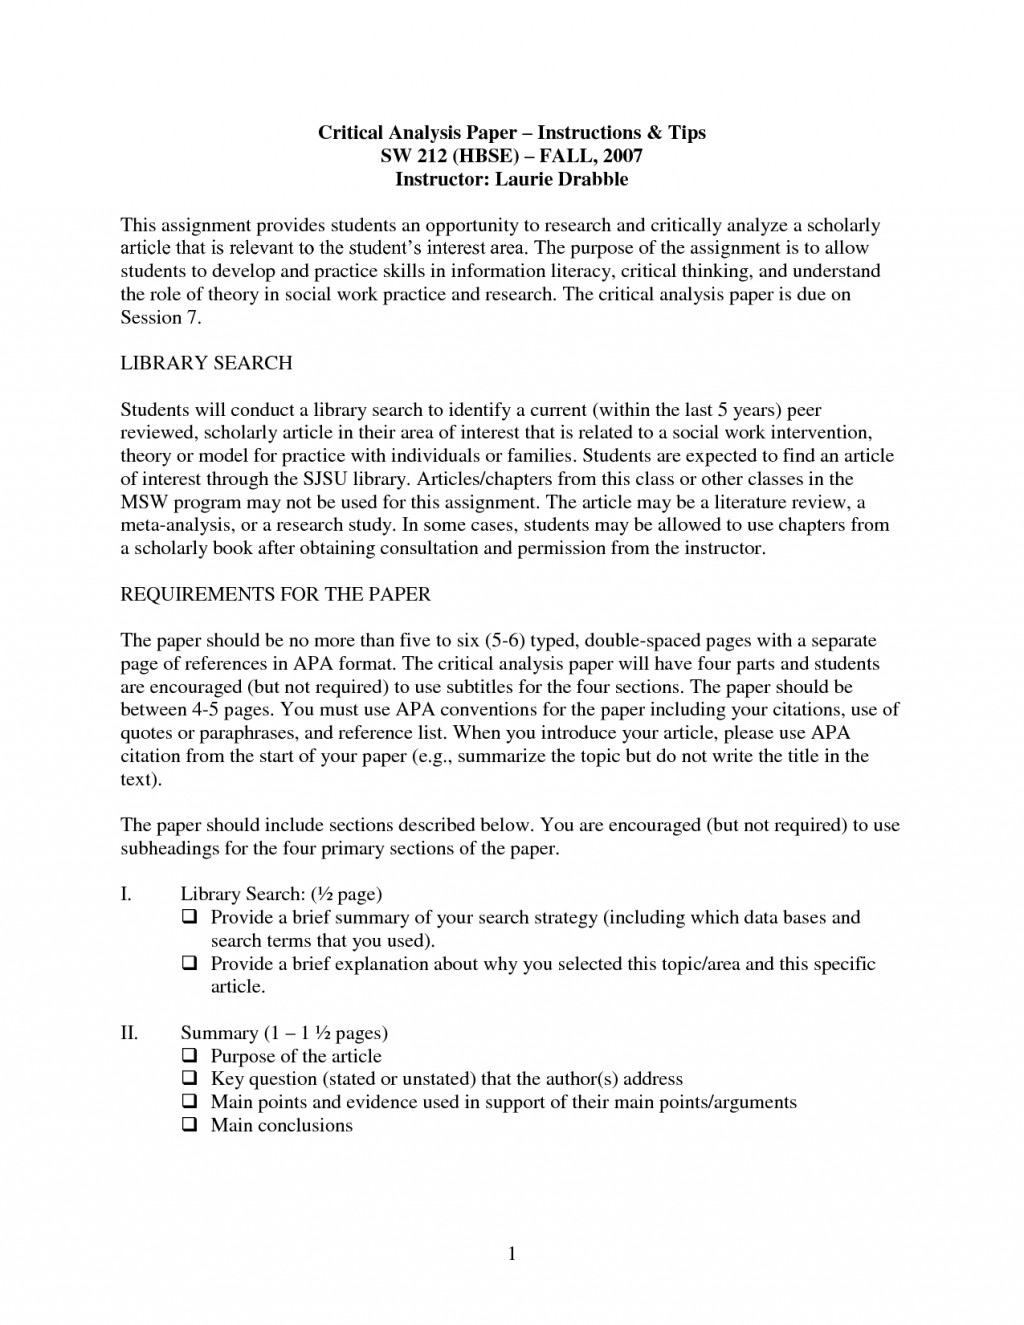 002 How To Begin Critical Essay Example Analysis Paper Literary Research Write Movie Review Sample Qaky0 Film Evaluation Amazing A Structure Response Large